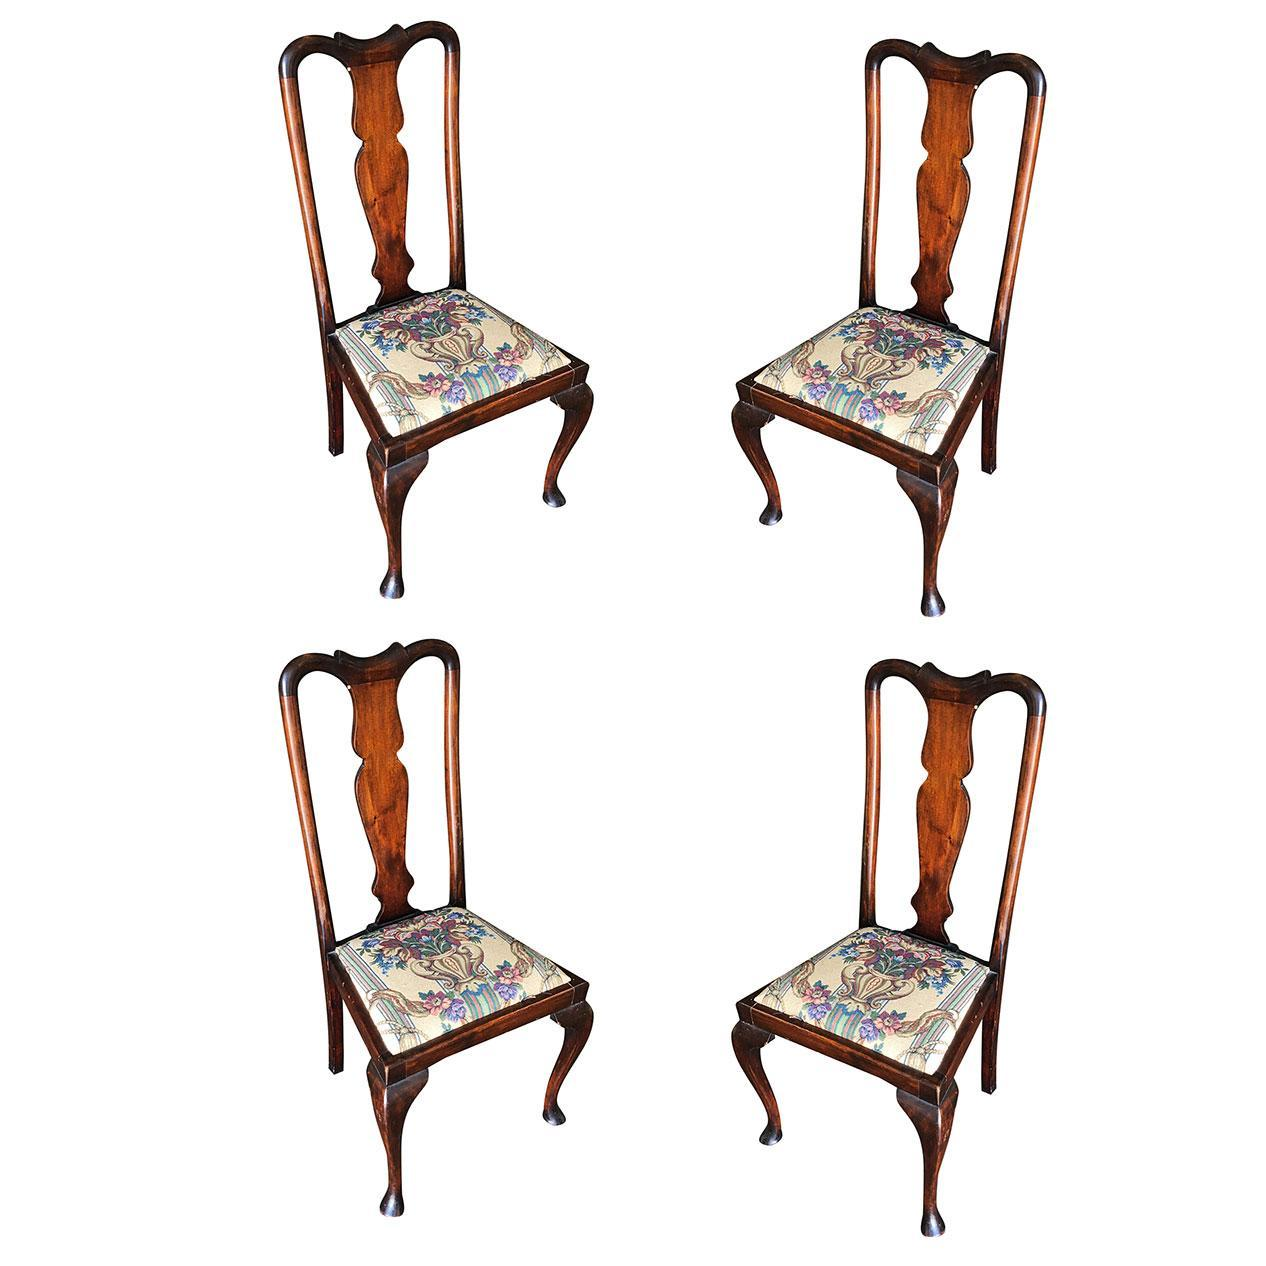 Pre-War Mahogany Art Deco Era Dining Room Chair Set of Four